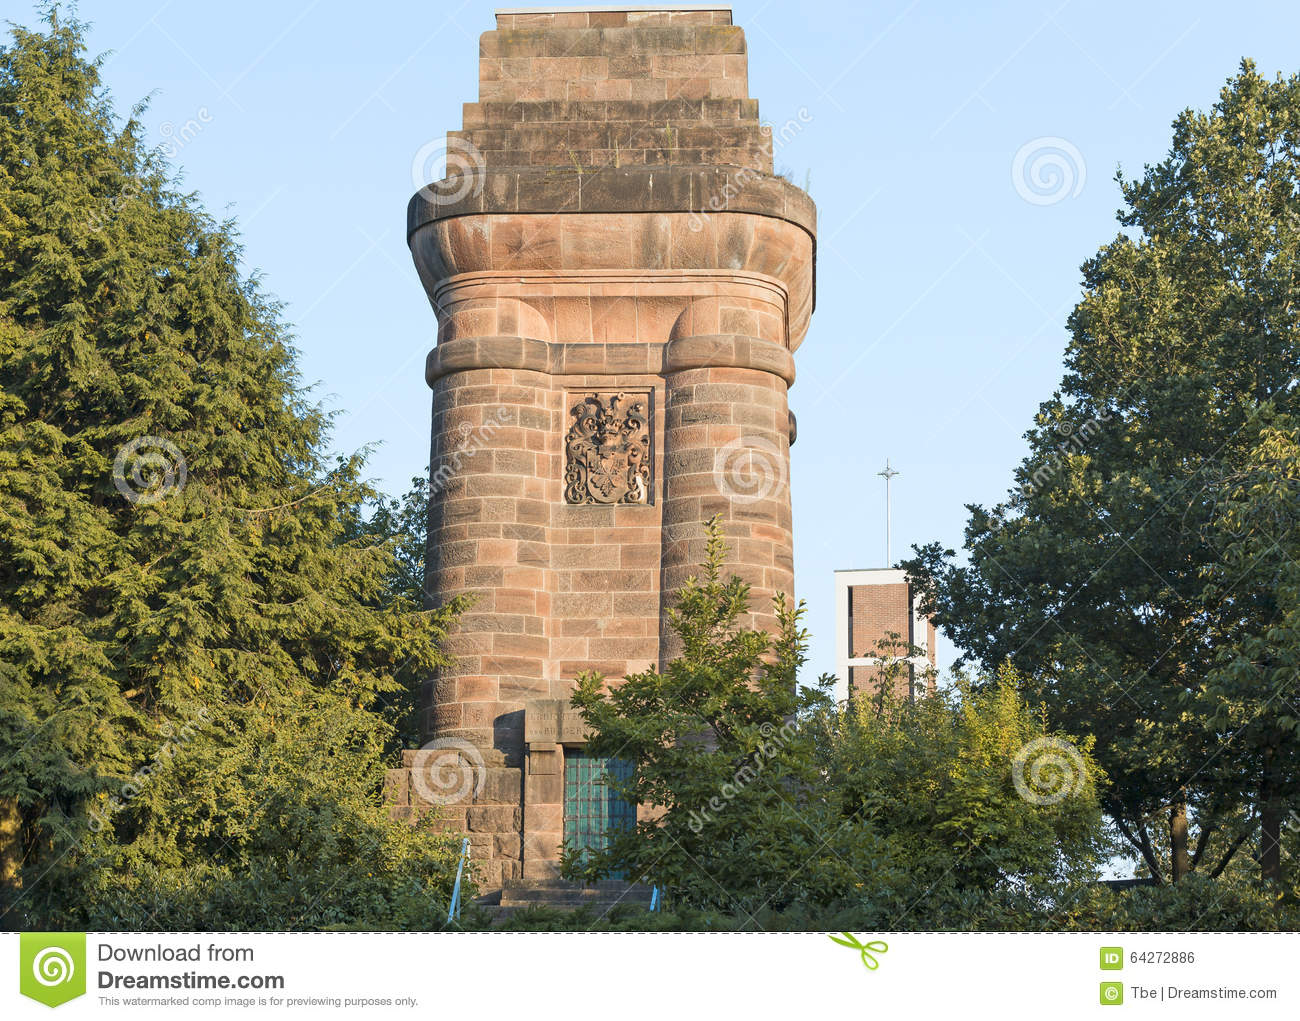 Marburg an der Lahn Germany  city pictures gallery : Bismarck Tower Bismarckturm in Marburg an der Lahn, Hesse, Germany ...